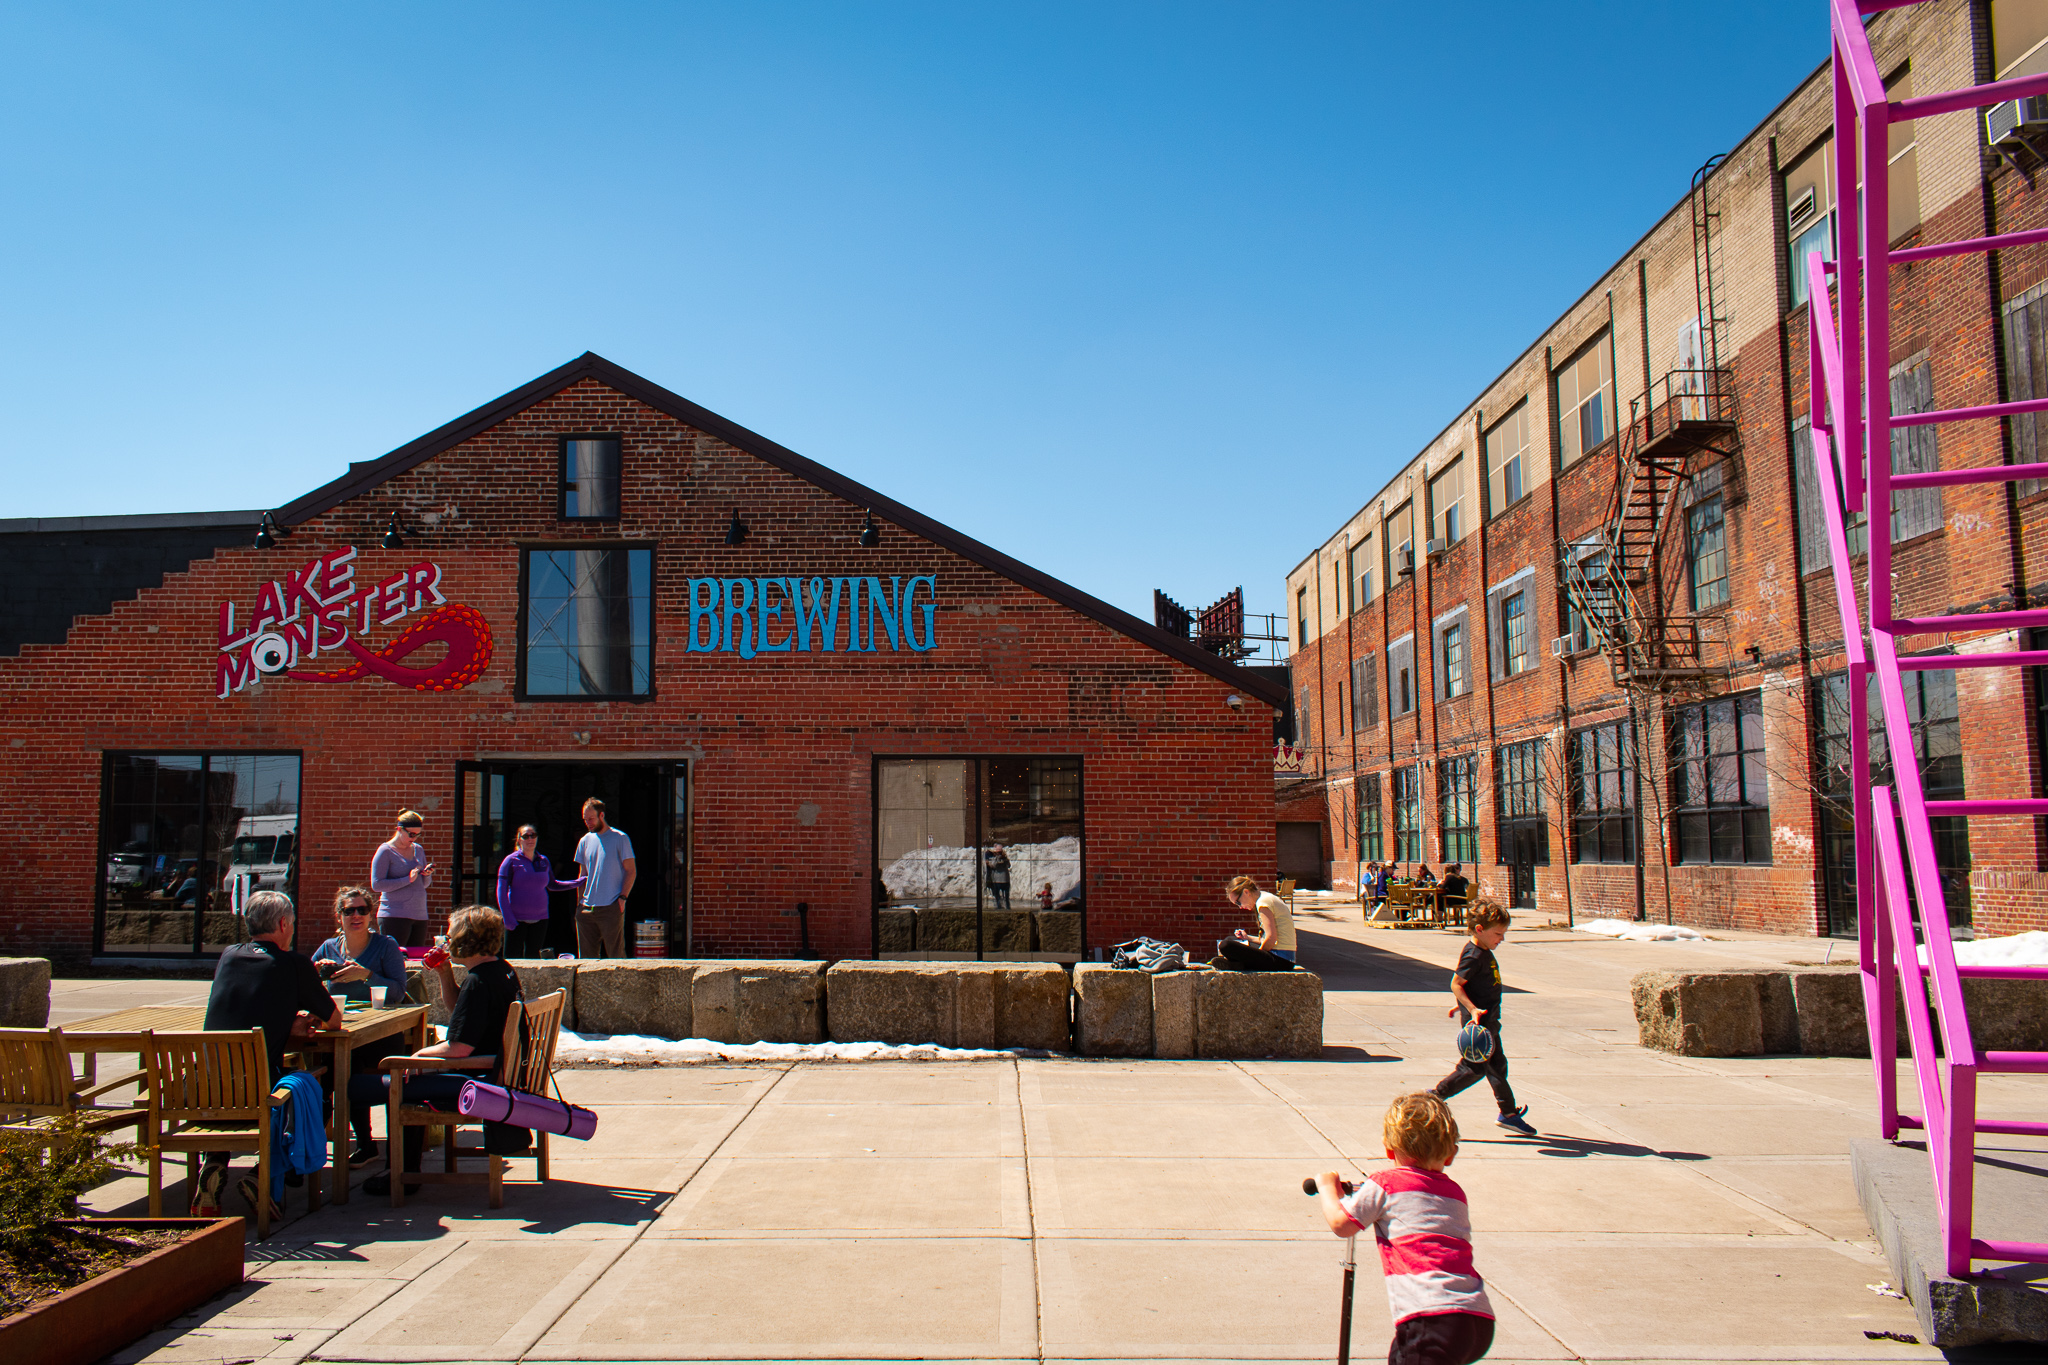 uprooted-traveler-lakeside-brewing-yoga-and-pint-minneapolis-st-paul.jpg